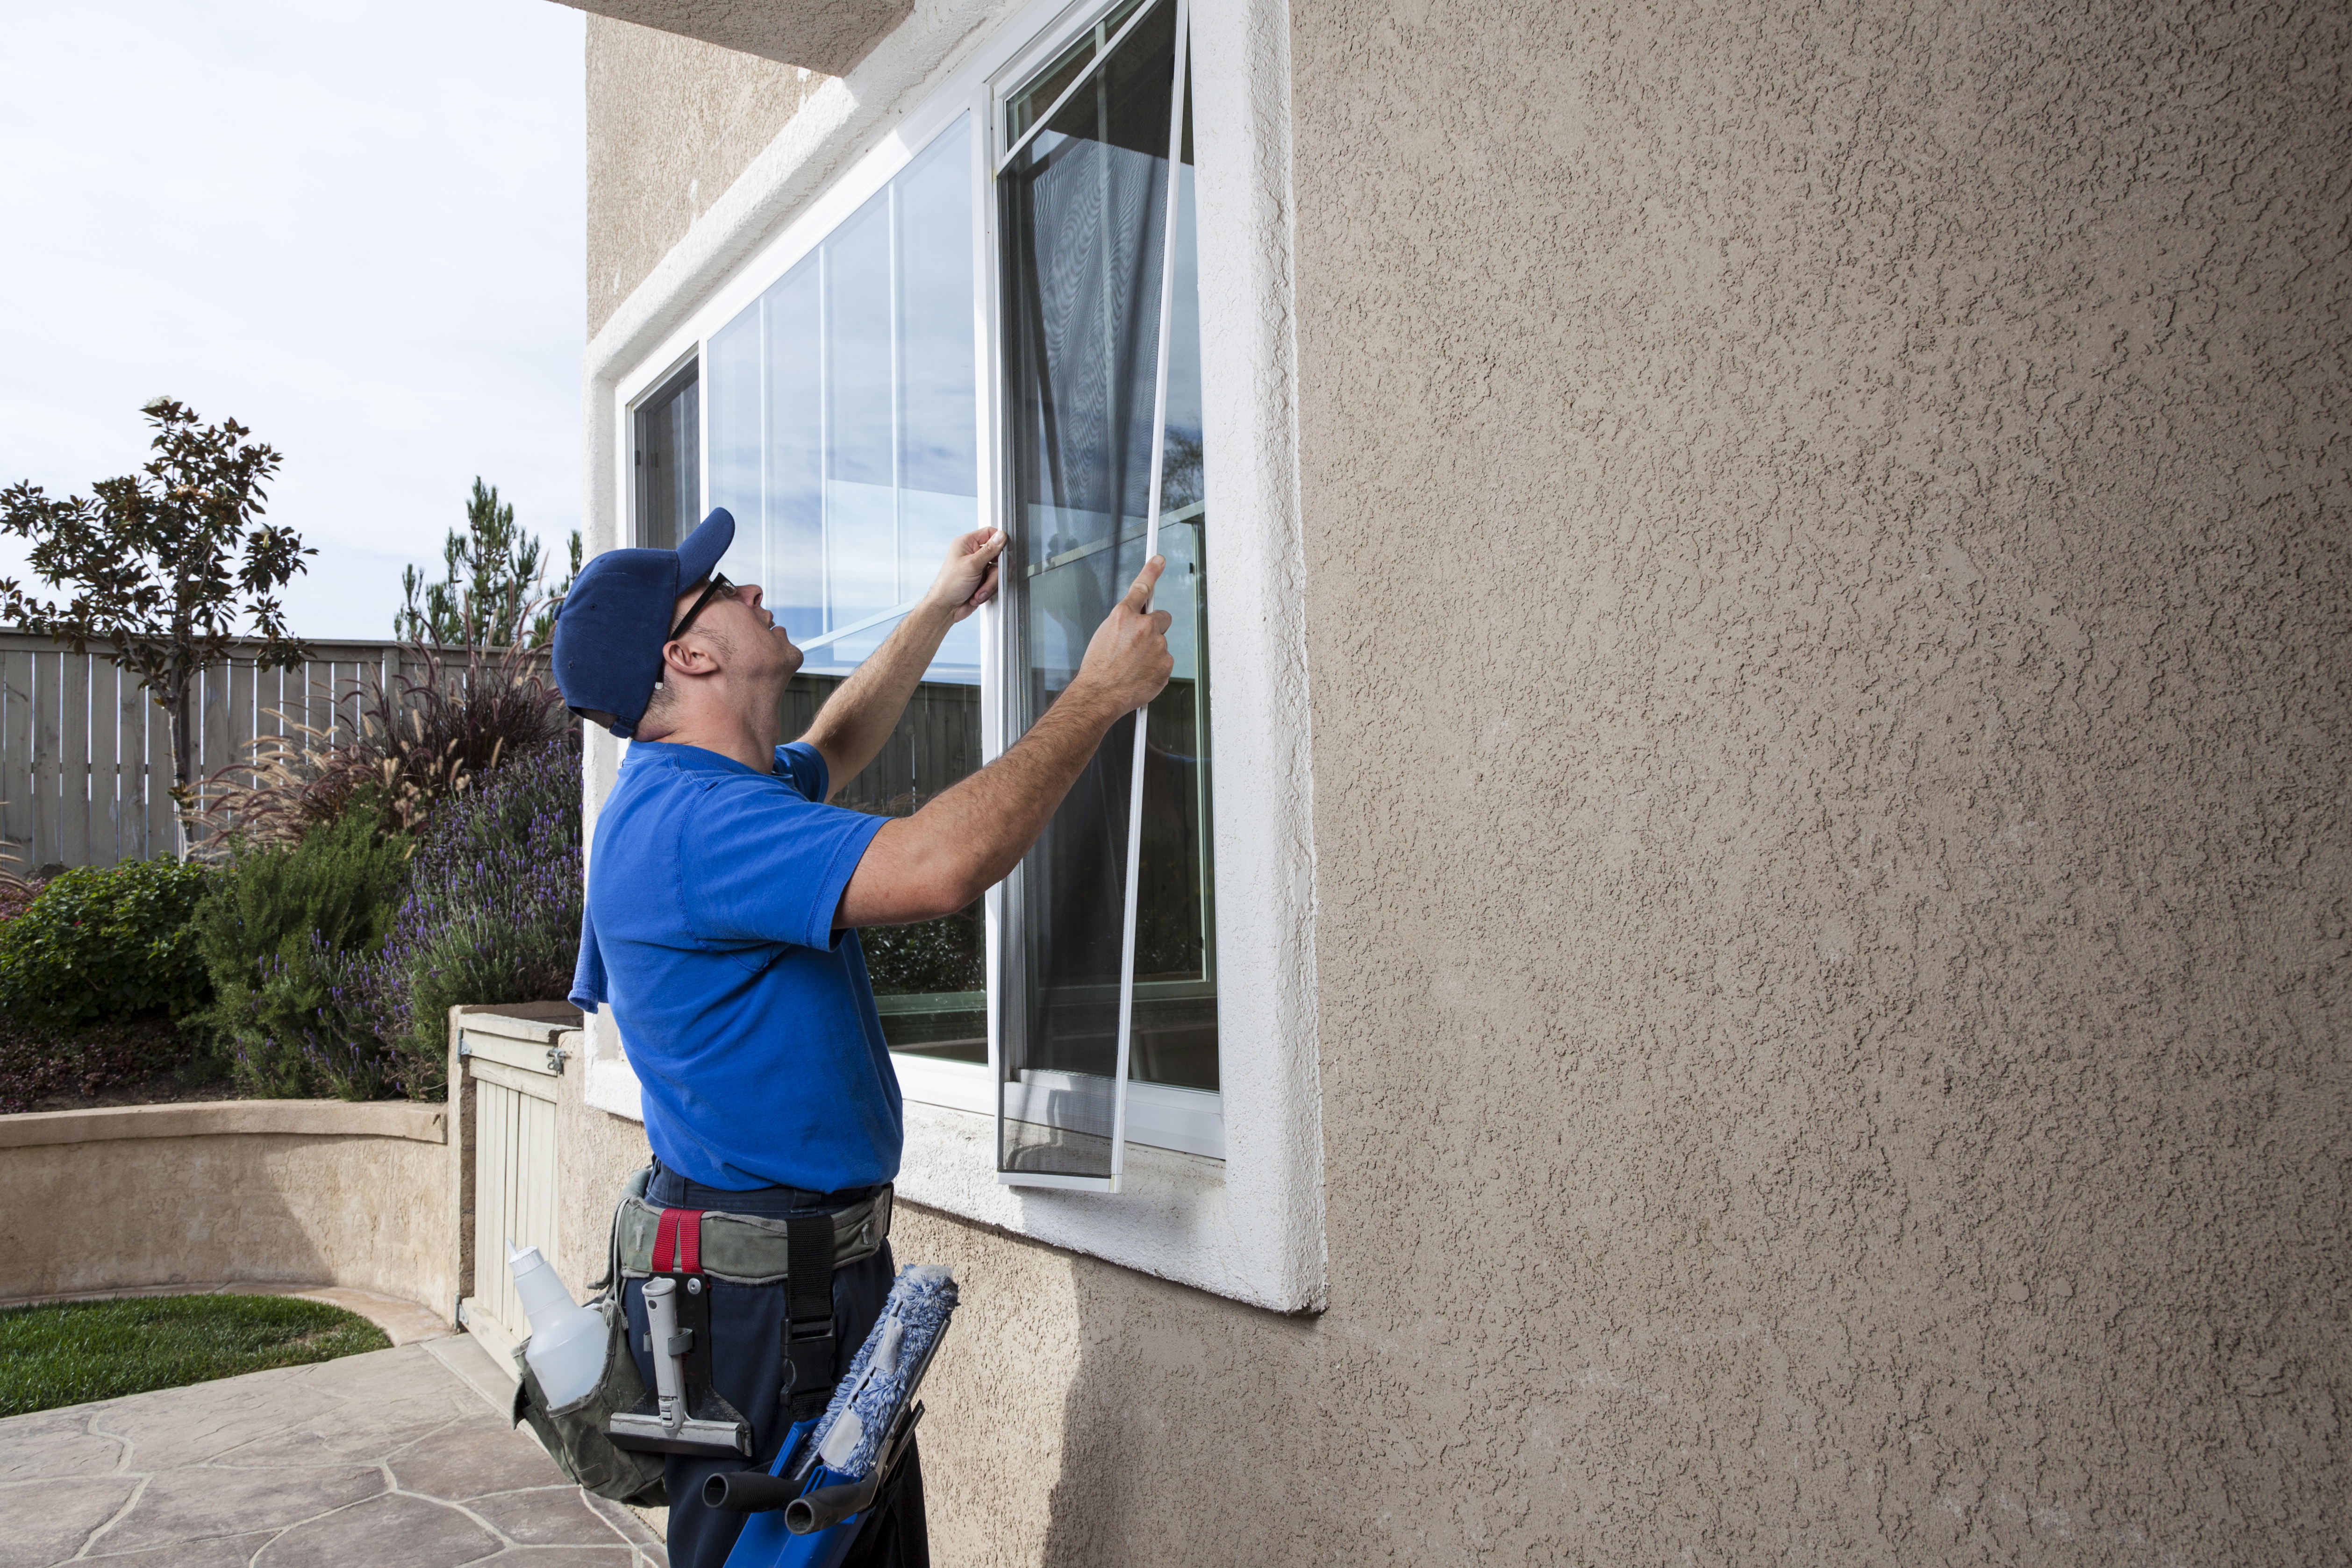 How to Get a Screen Out of a Window | Home Guides | SF Gate